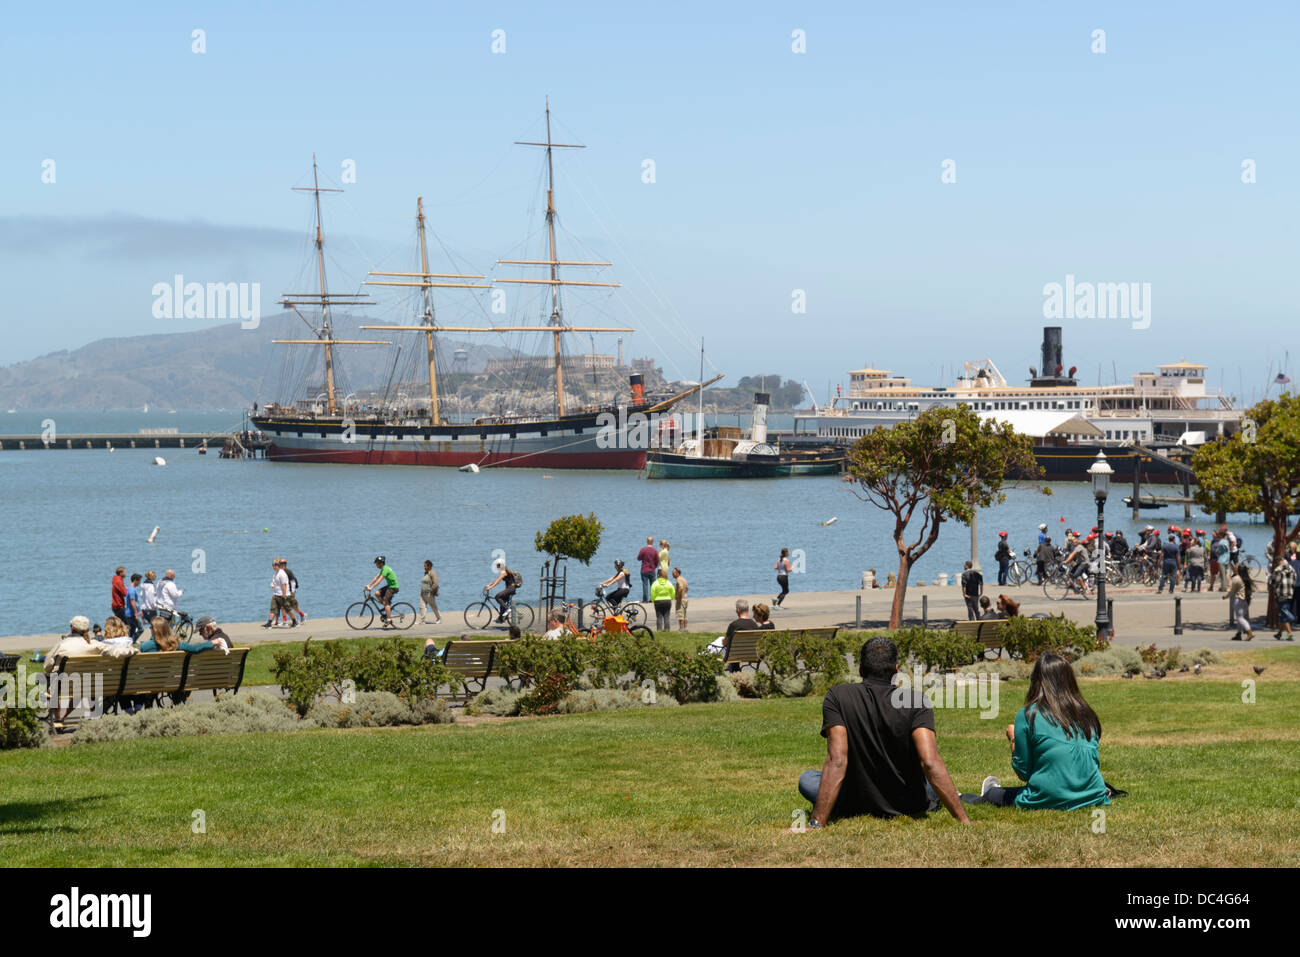 Maritime National Historic Park and Aquatic Park, San Francisco, CA - Stock Image